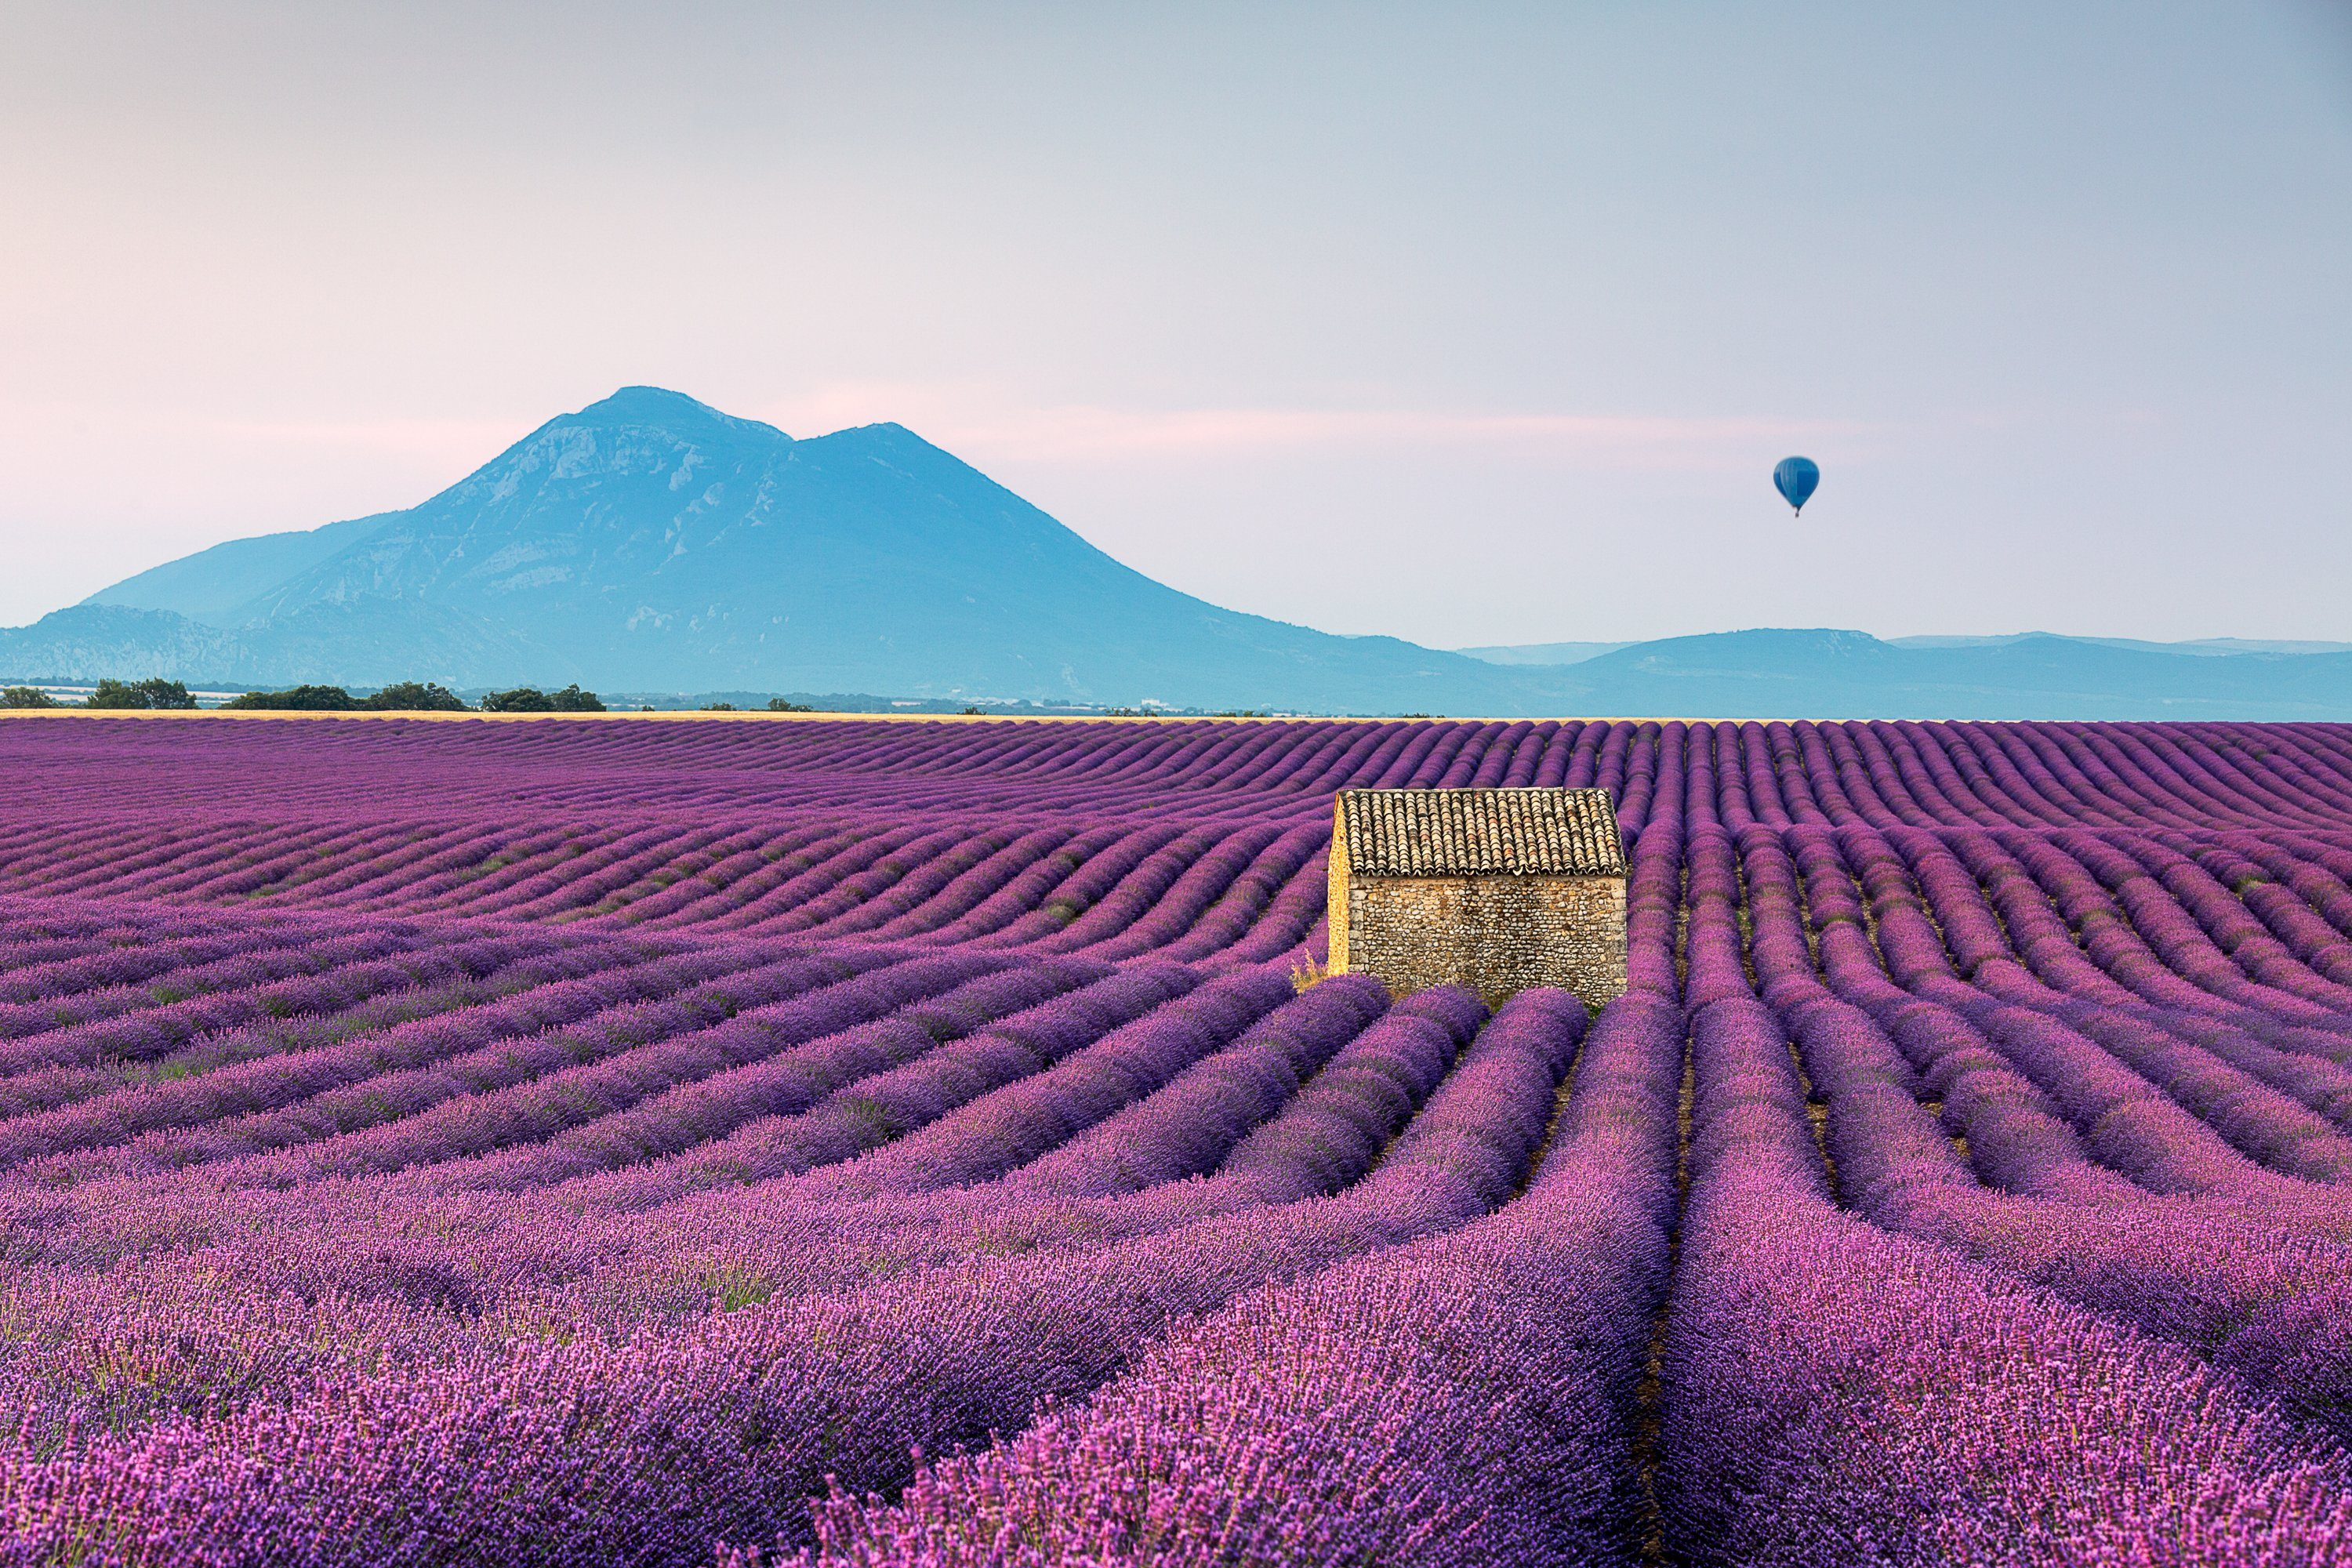 Scenic View Of Lavender Field By Mountains Against Sky